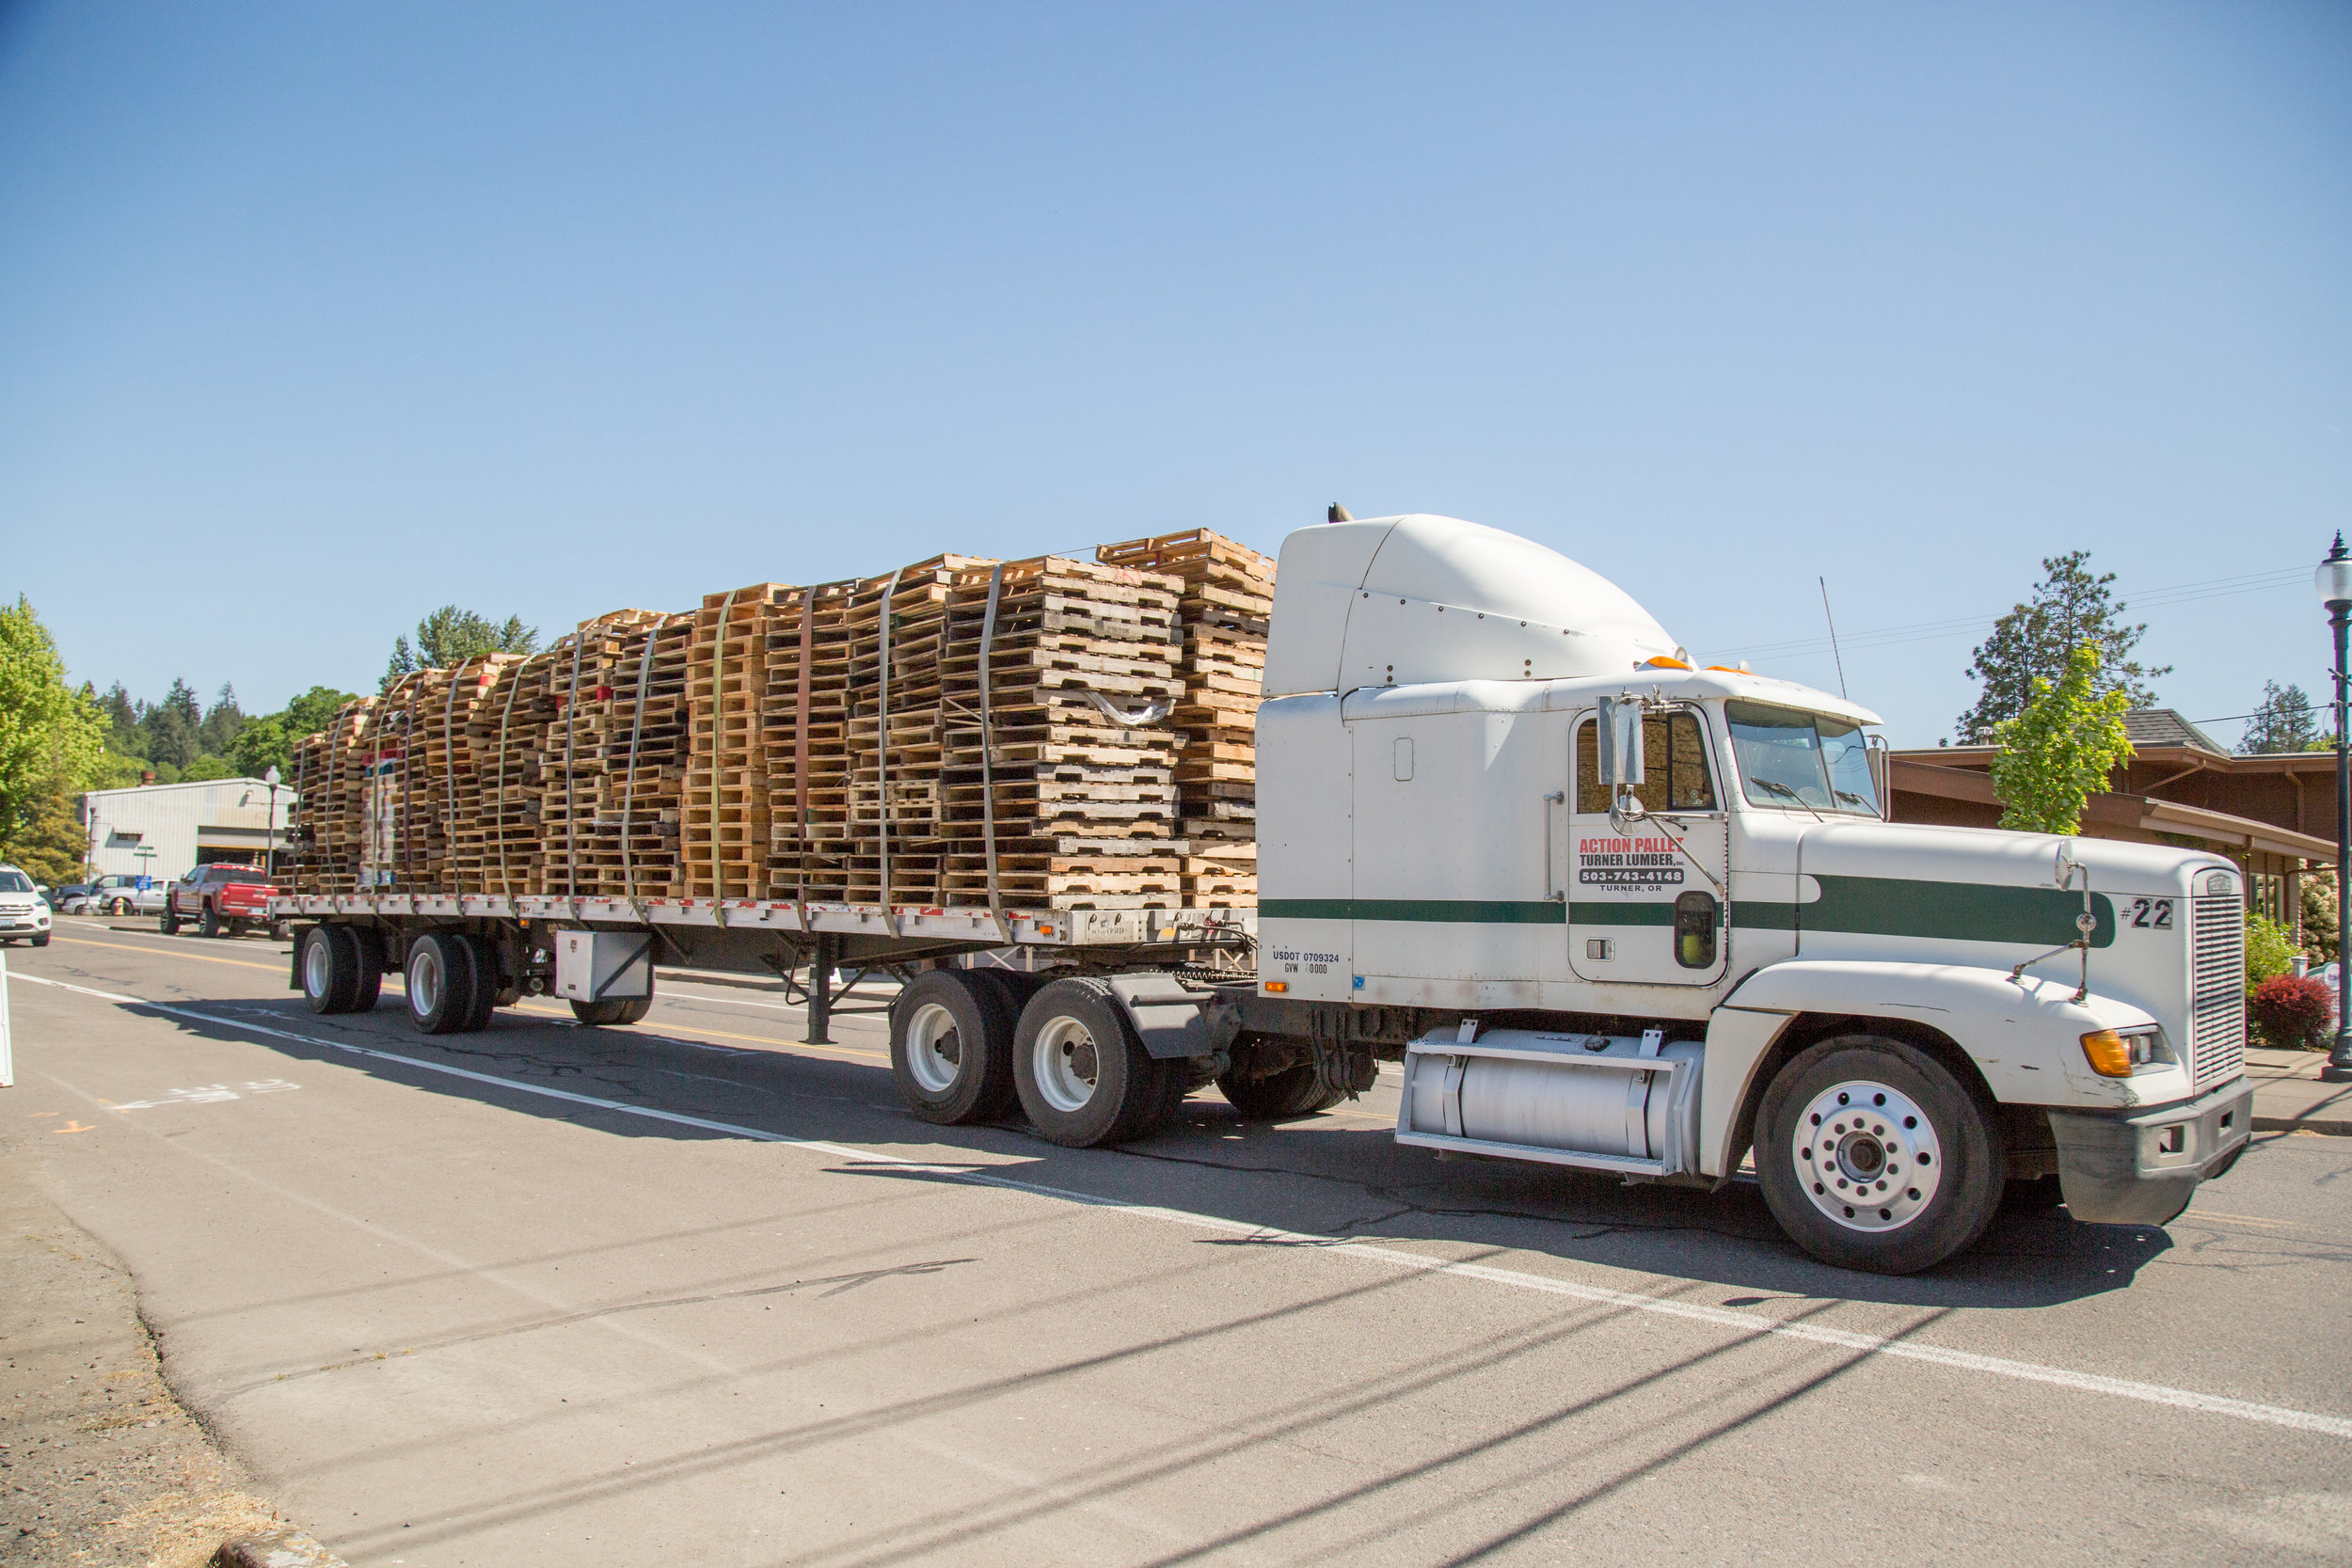 Copy of Turner Lumber Products and Business Photos 2019 (183).jpg